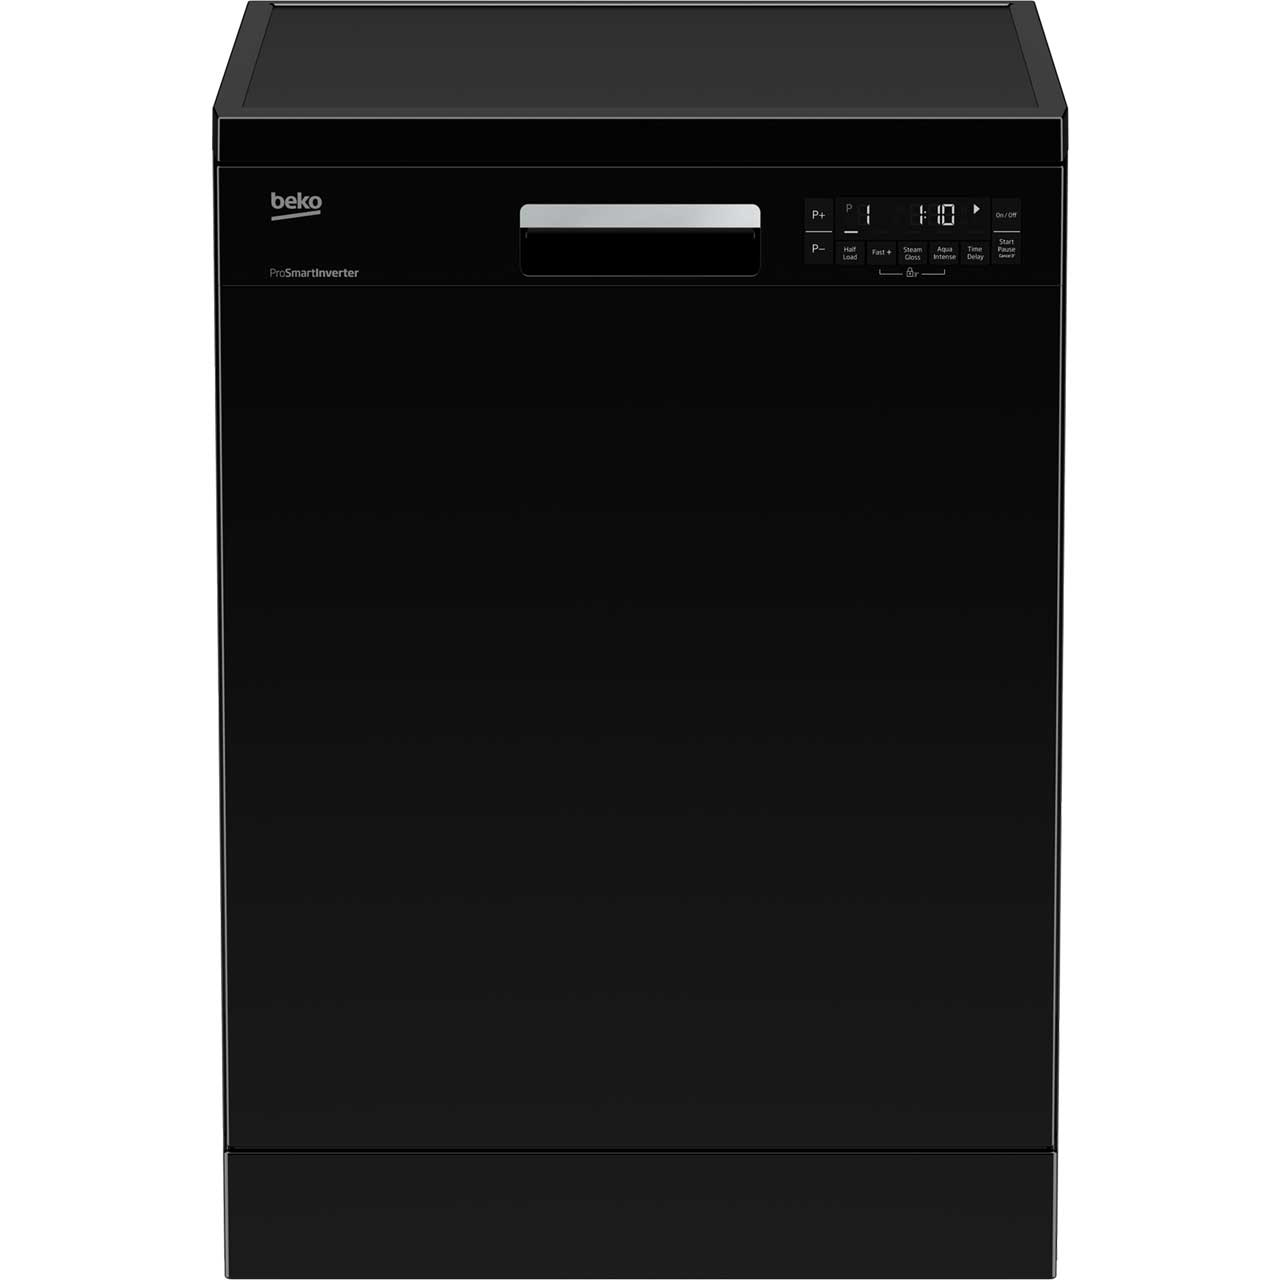 Beko DFN28R21B Free Standing Dishwasher in Black